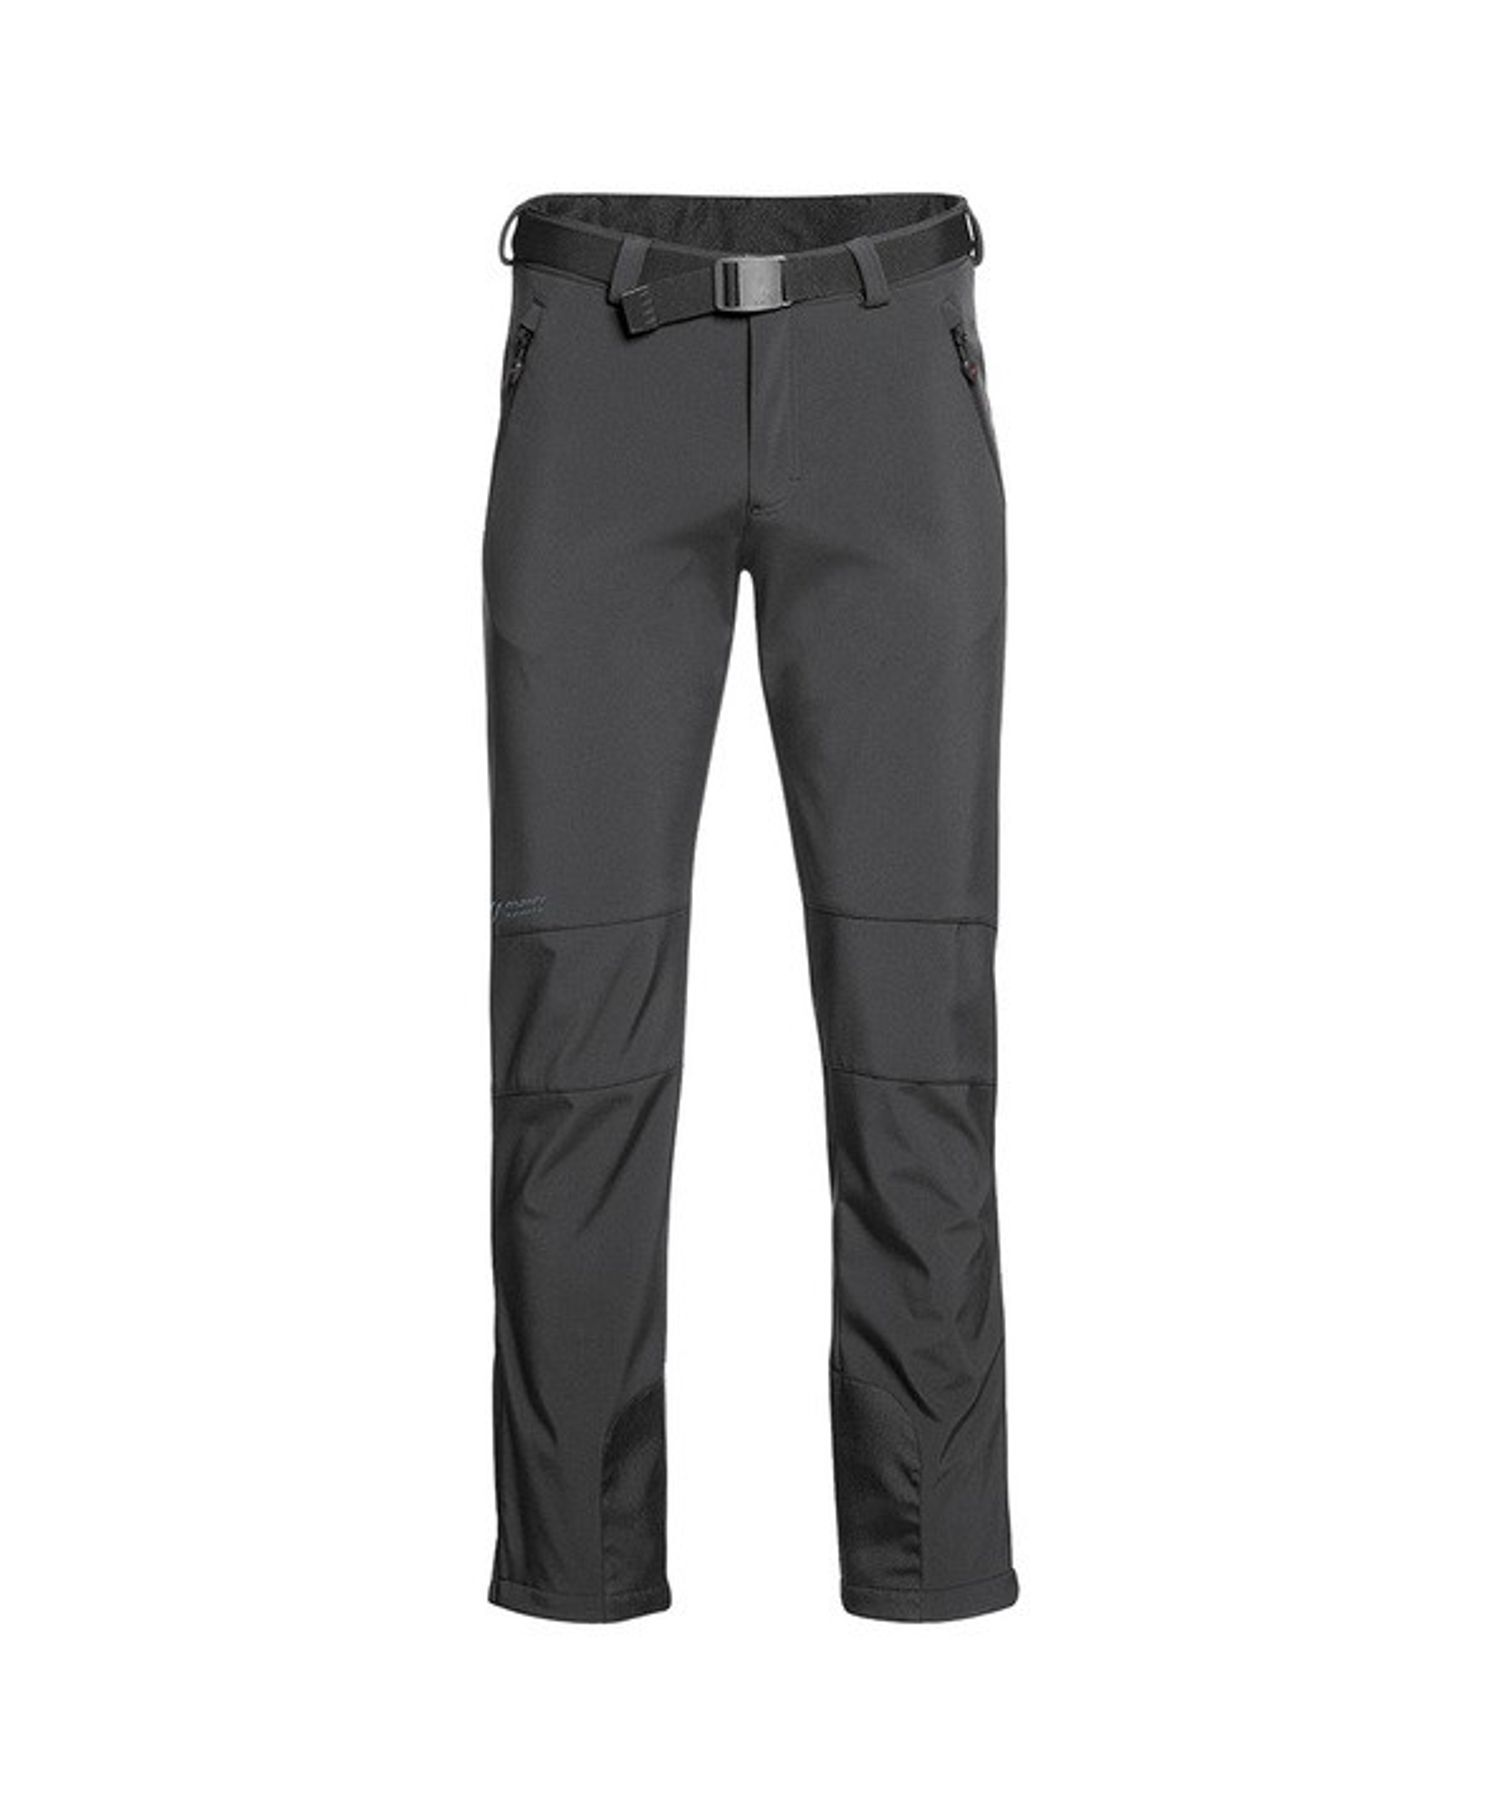 Maier Sports- Herren Funktionelle Softshell Touren - und Wanderhose in Black Artikel Tech Pants M (136008) – Bild 1